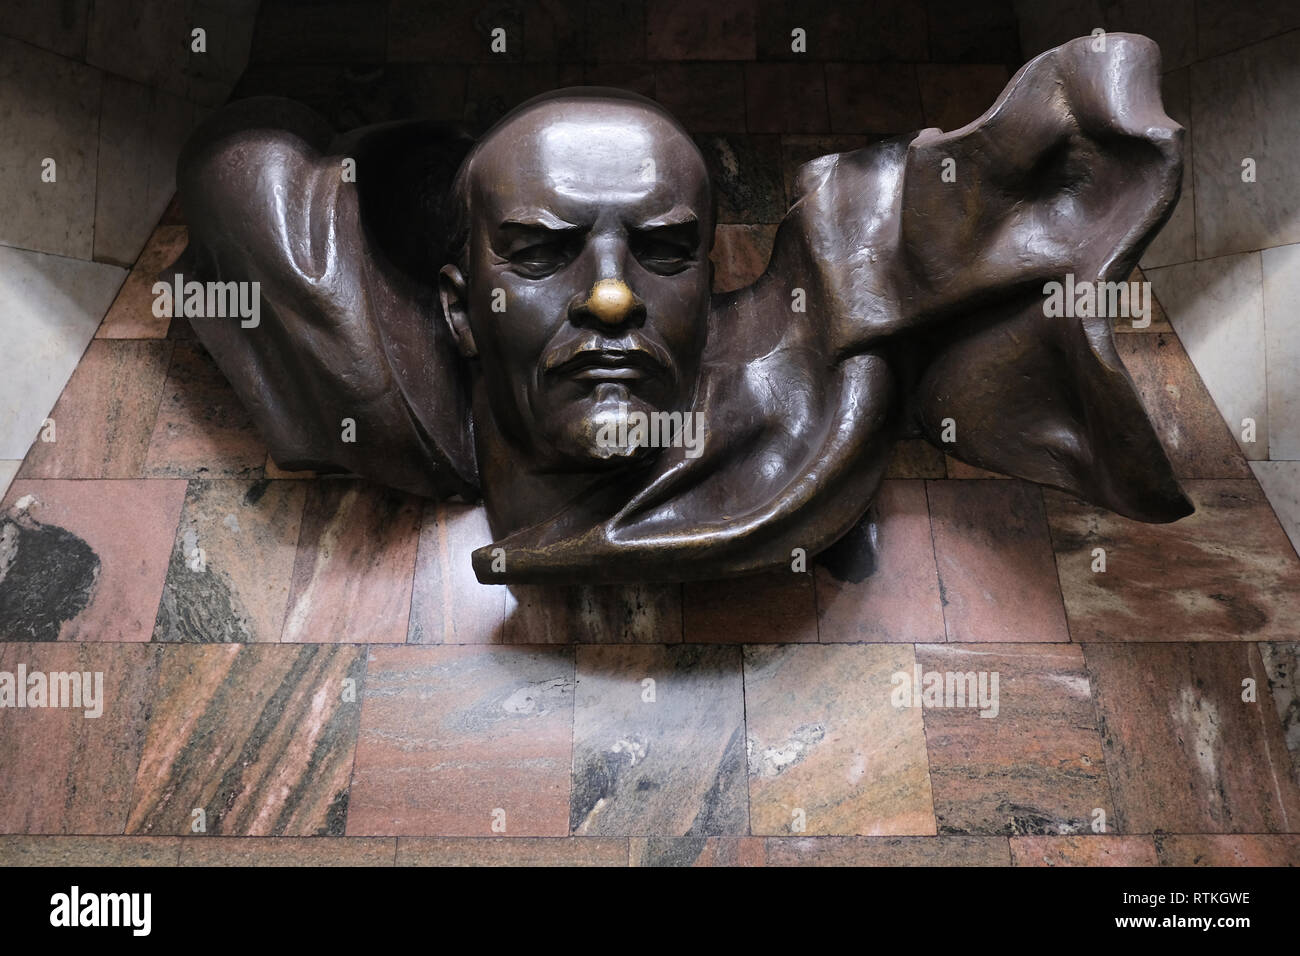 The statue of Vladimir Lenin placed inside  Plosca Lienina (Lenin Square) Metro station in Independence Square in the city of Minsk, capital of Belarus Stock Photo